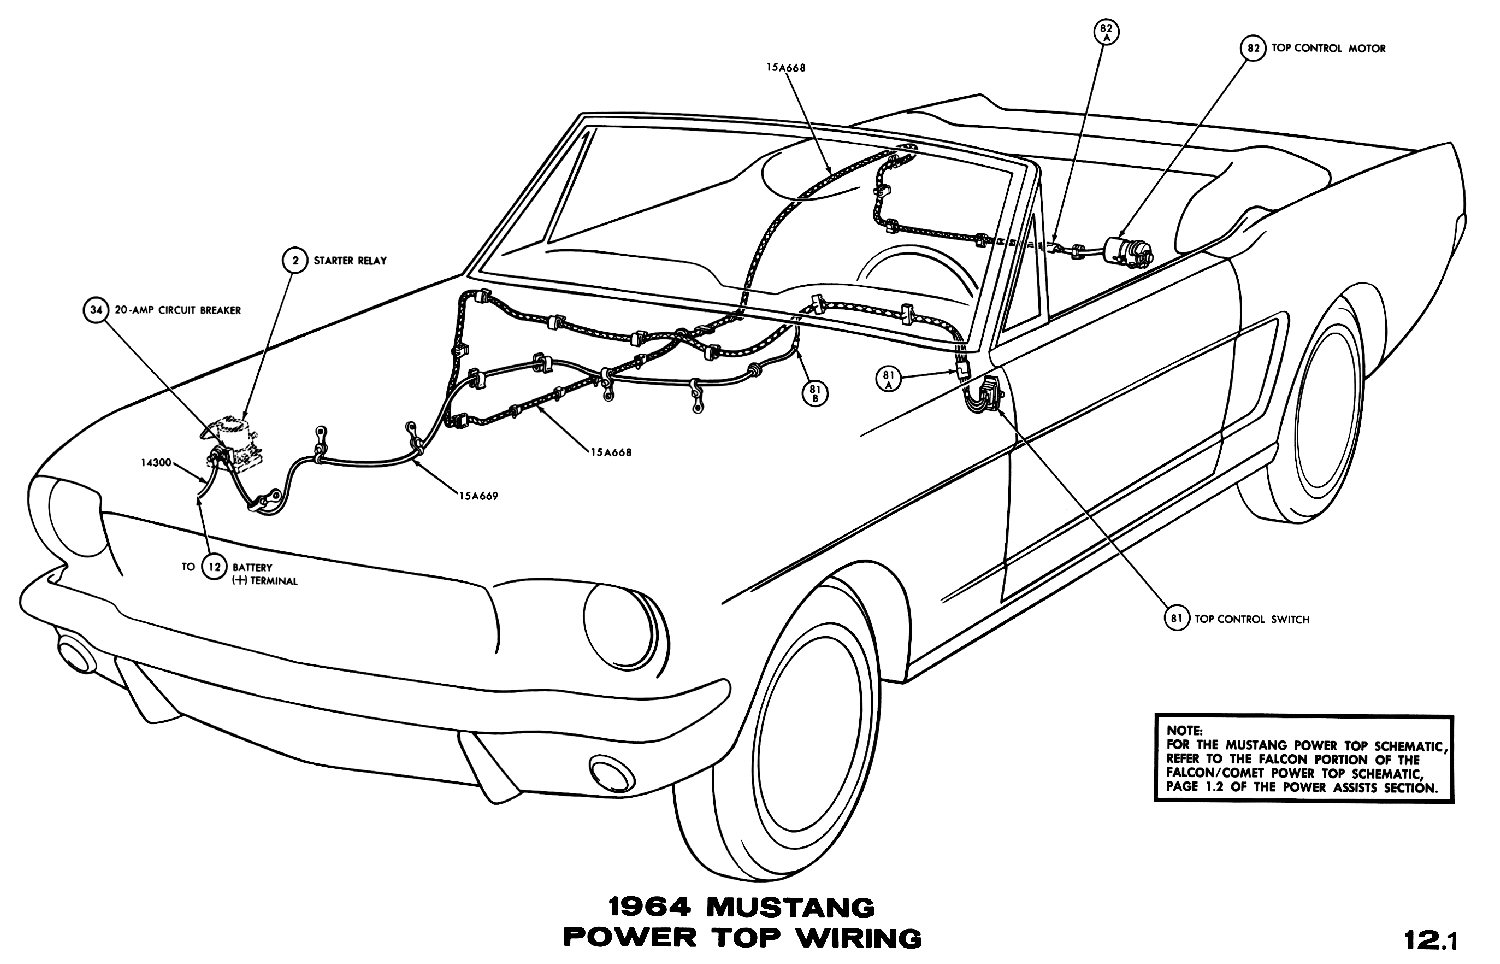 1964 Mustang Wiring Diagrams Average Joe Restoration 1968 Transmission Selector Diagram Power Top Pictorial Or Schematic